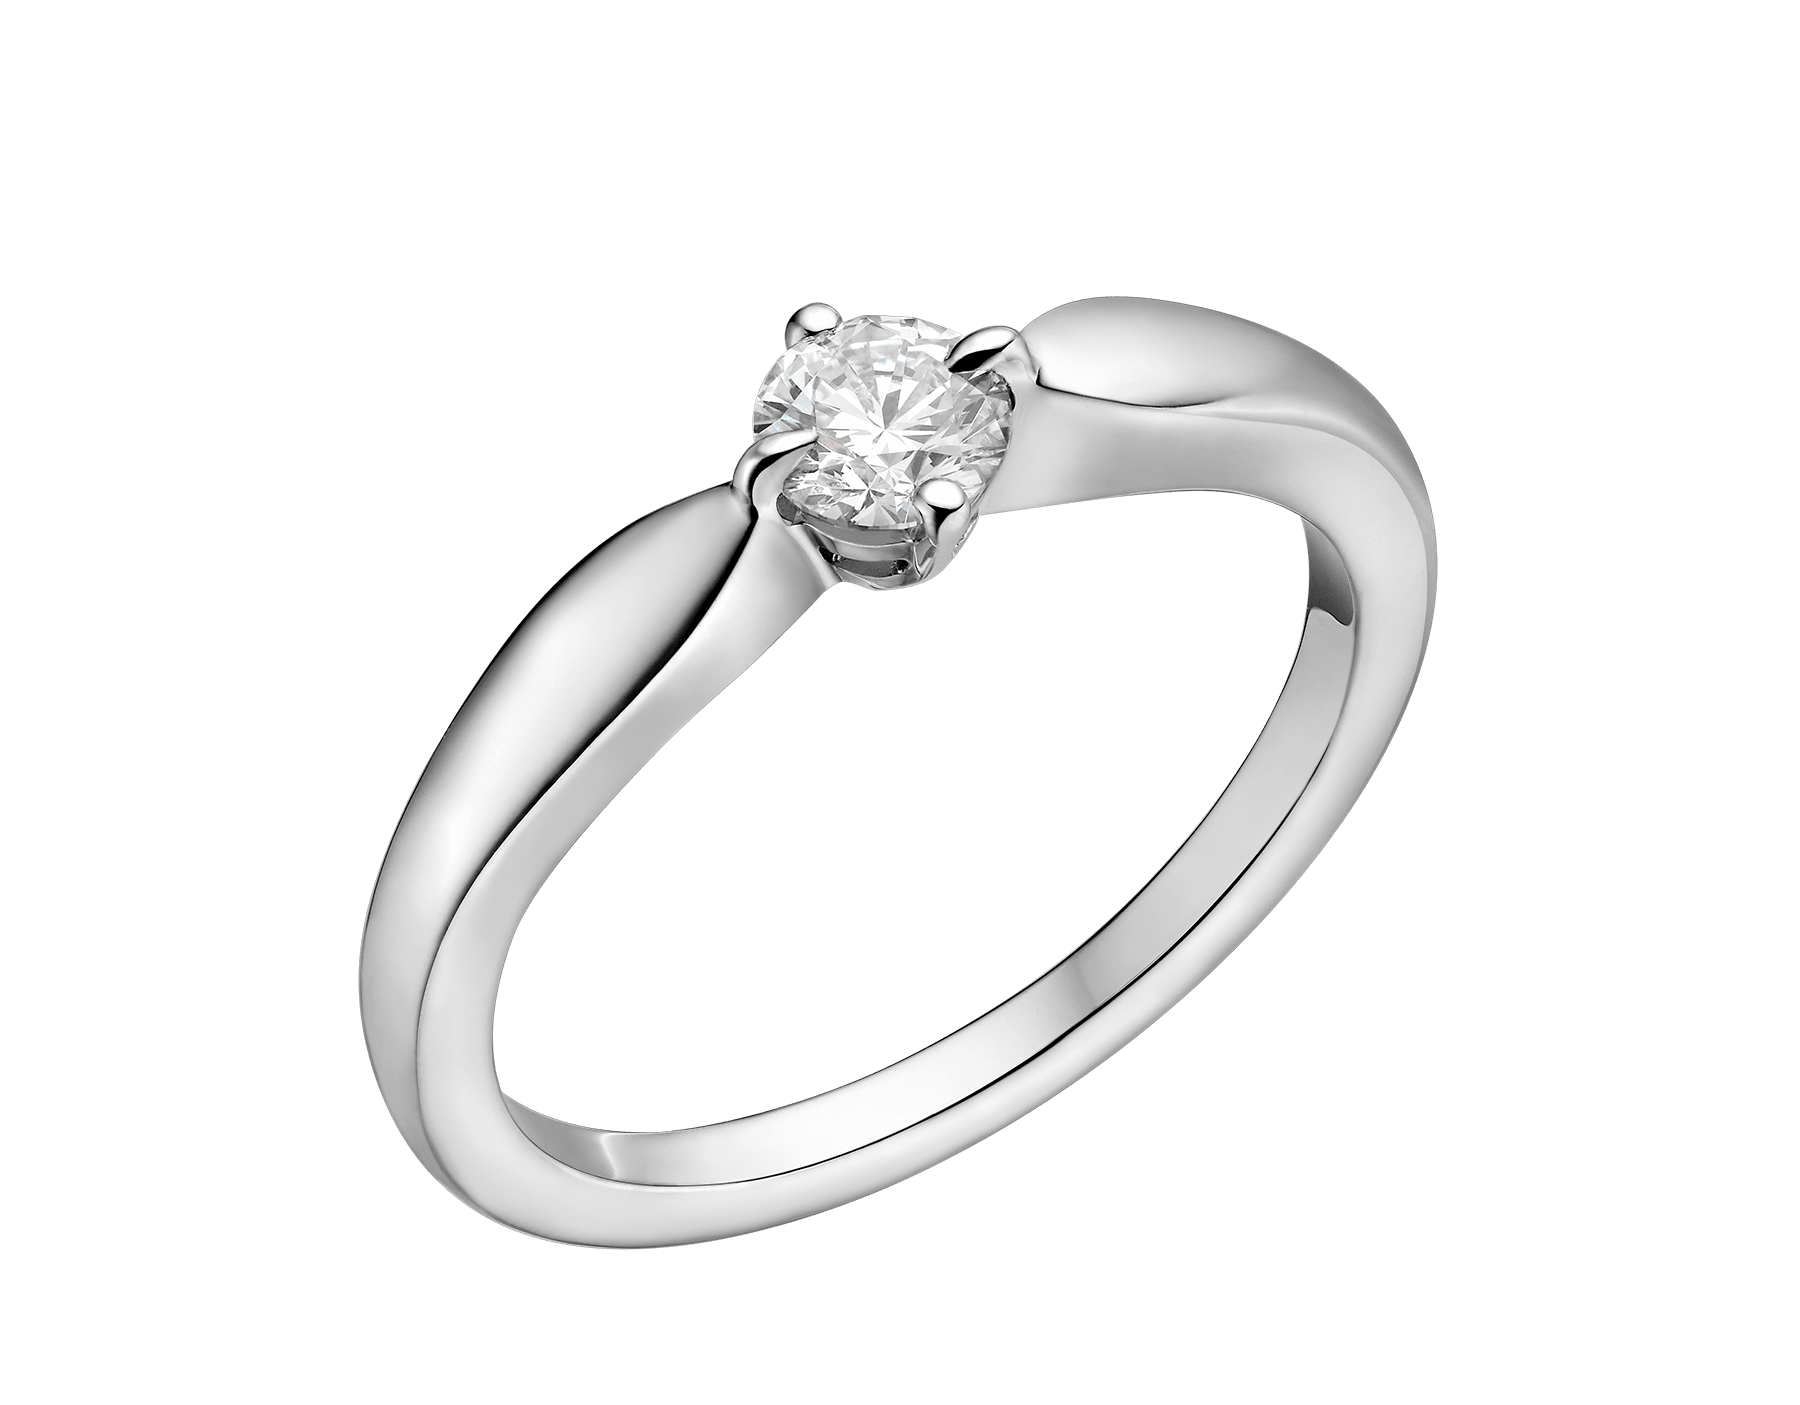 Dedicata a Venezia: Torcello solitaire ring in platinum with round brilliant-cut diamond. Available from 0.30 ct. Its curved setting perfectly embraces the diamond. The name comes from the Venetian island of Torcello. 344114 image 1